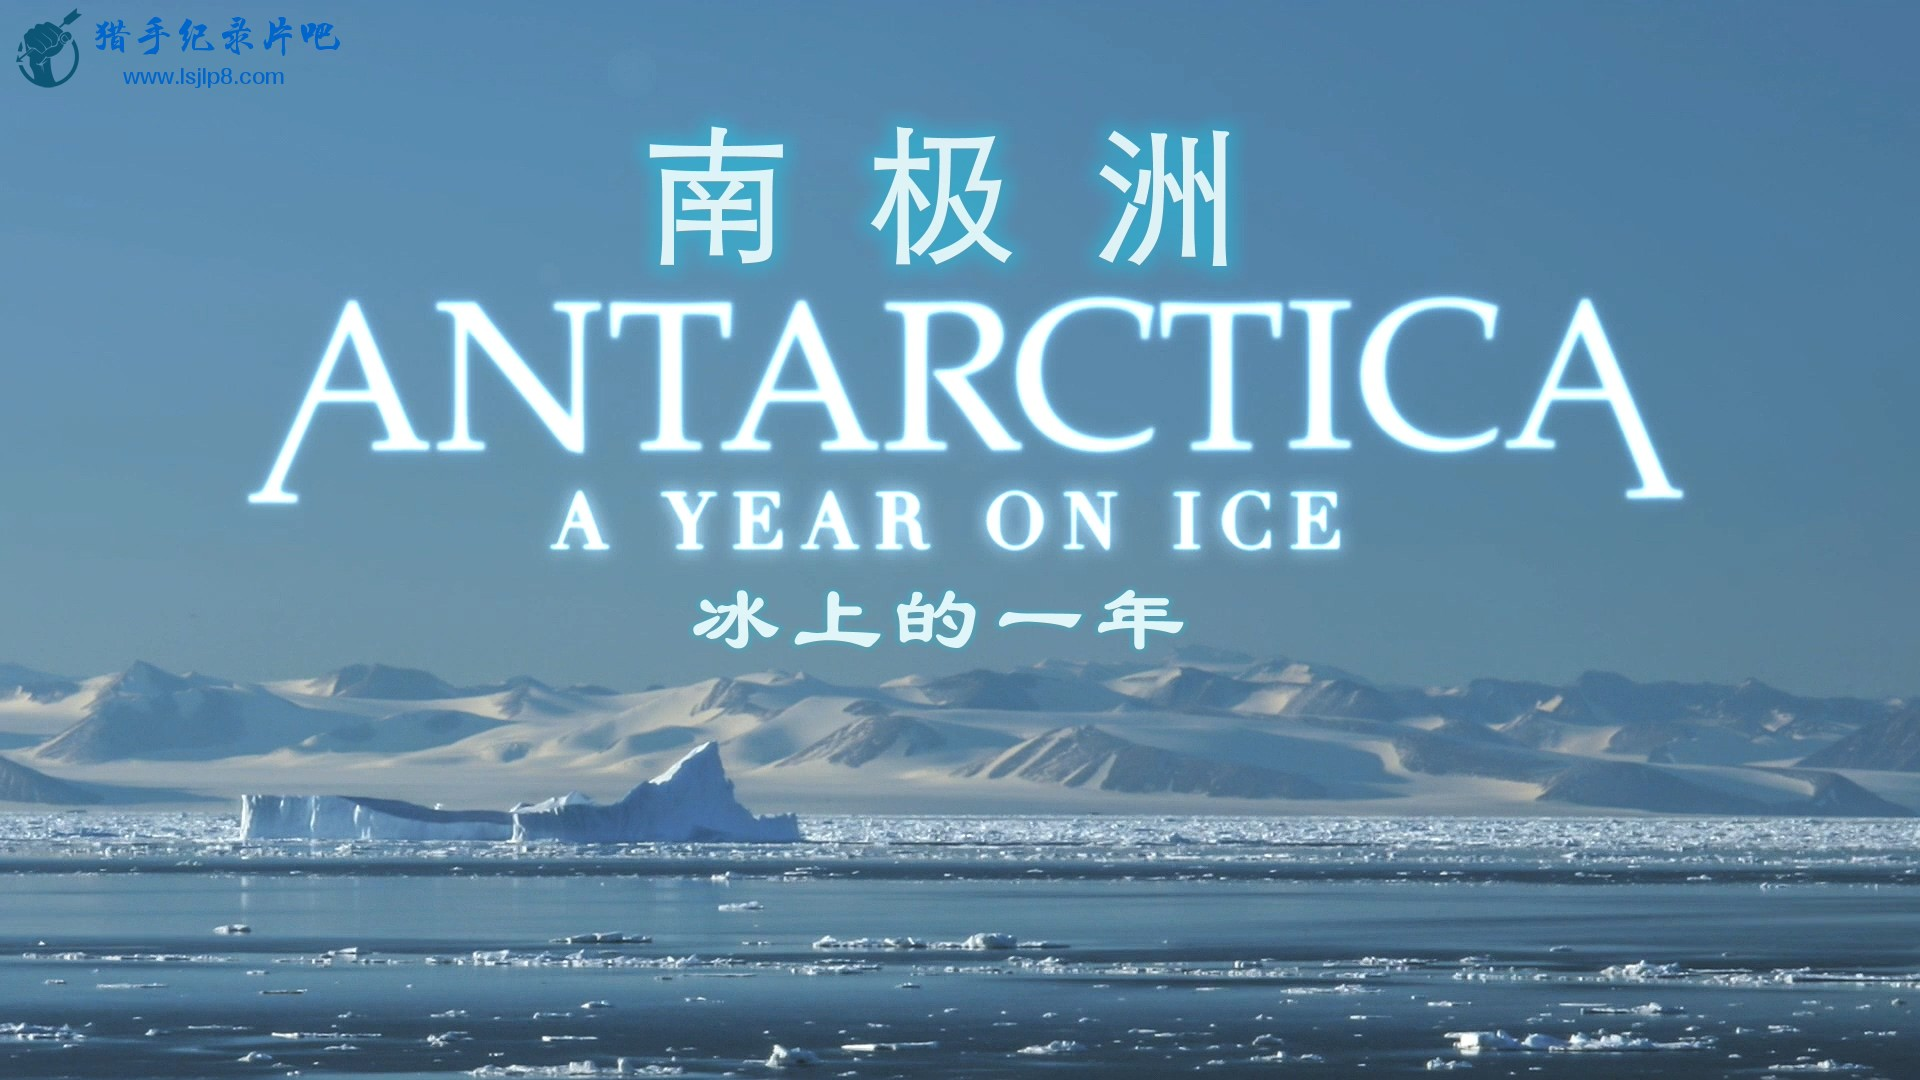 Antarctica.A.Year.on.Ice.2013.1080p.BluRay.x264.DTS-WiKi.mkv_20200320_104618.935.jpg